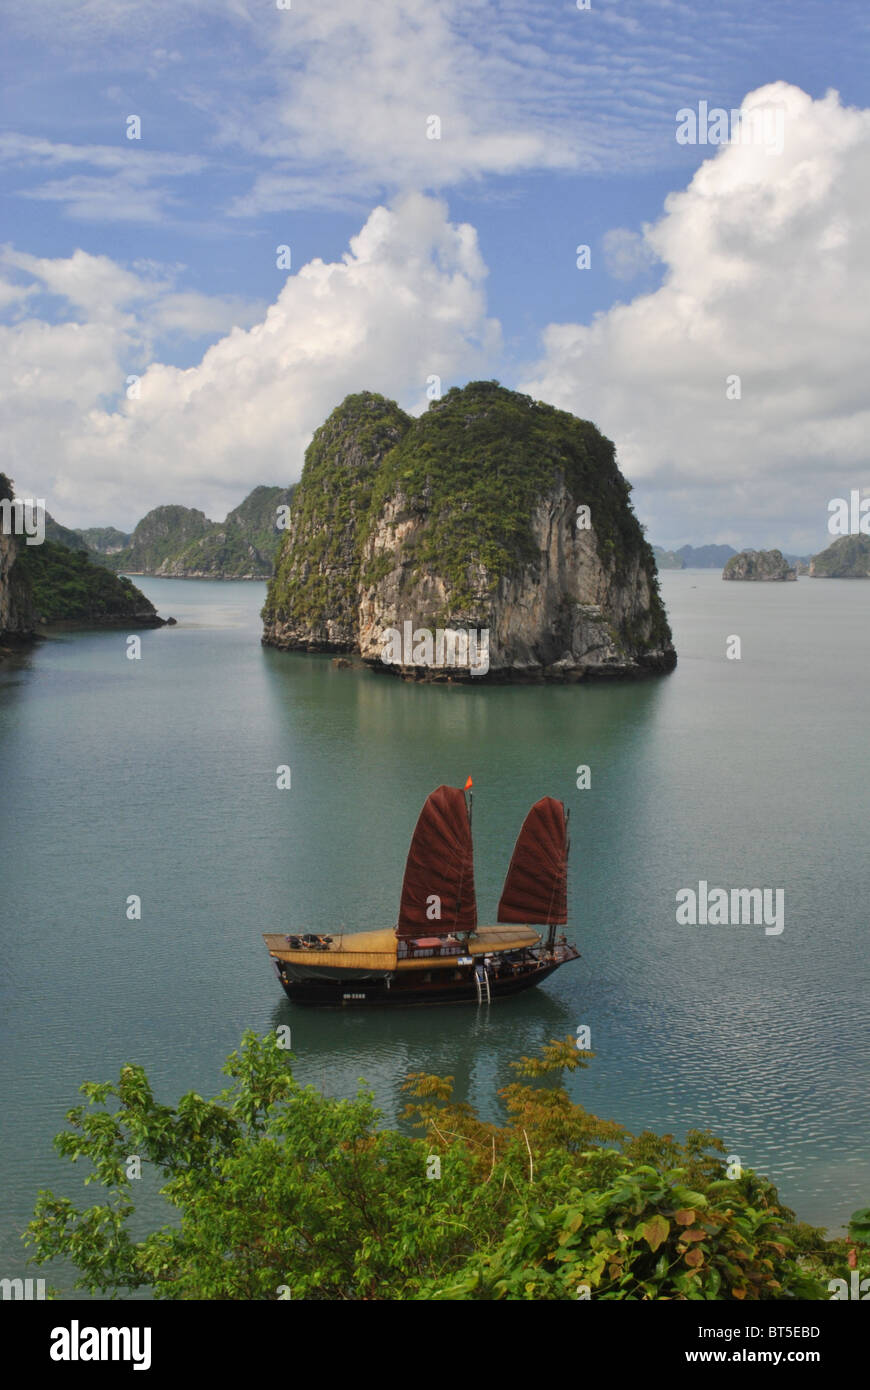 Junk with red sail in Halong Bay, Vietnam - Stock Image